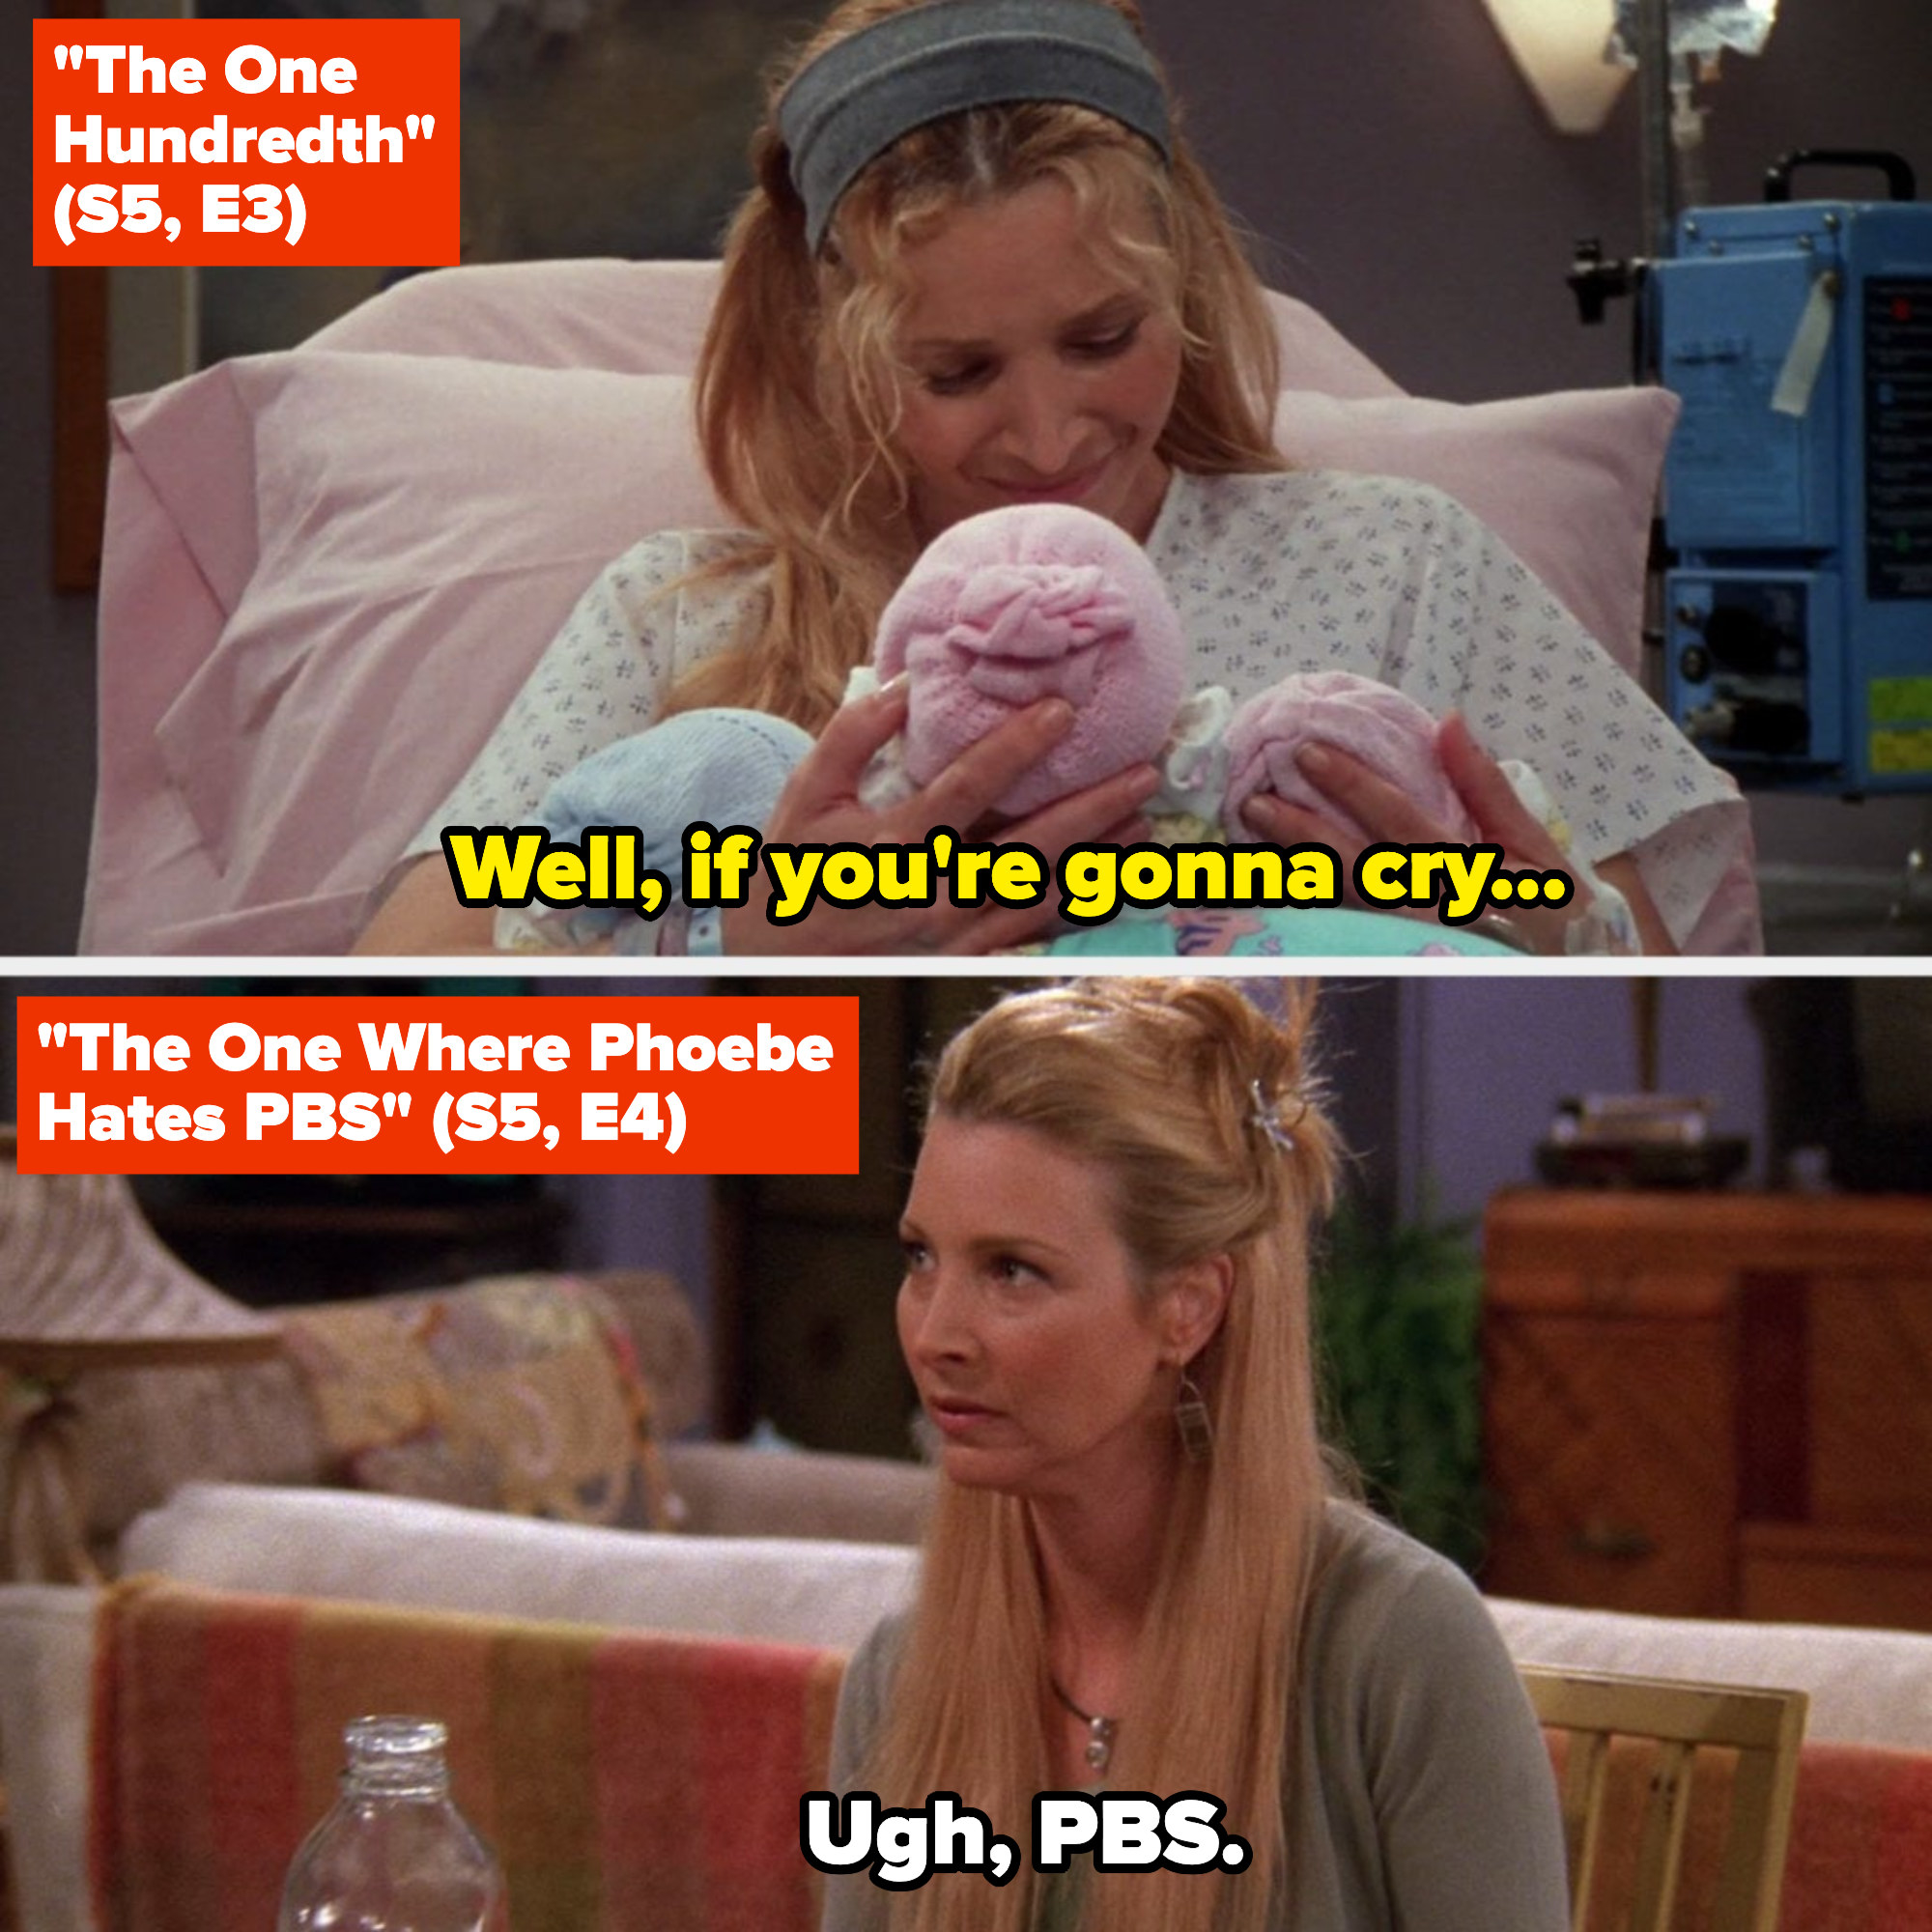 Phoebe holding the triplets in the hospital room, crying; the next episode, Phoebe hating on PBS